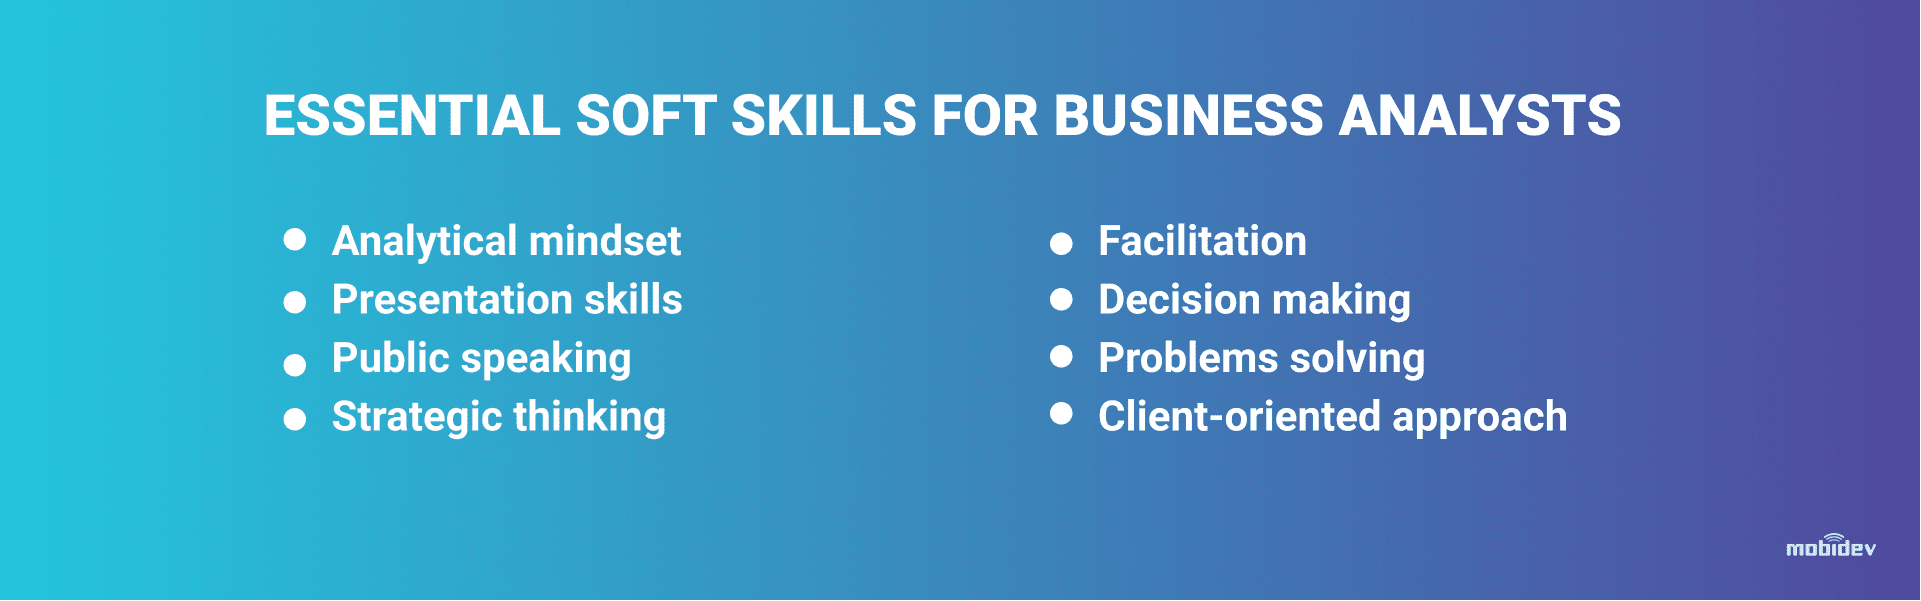 Soft Skills for a Great Business Analyst